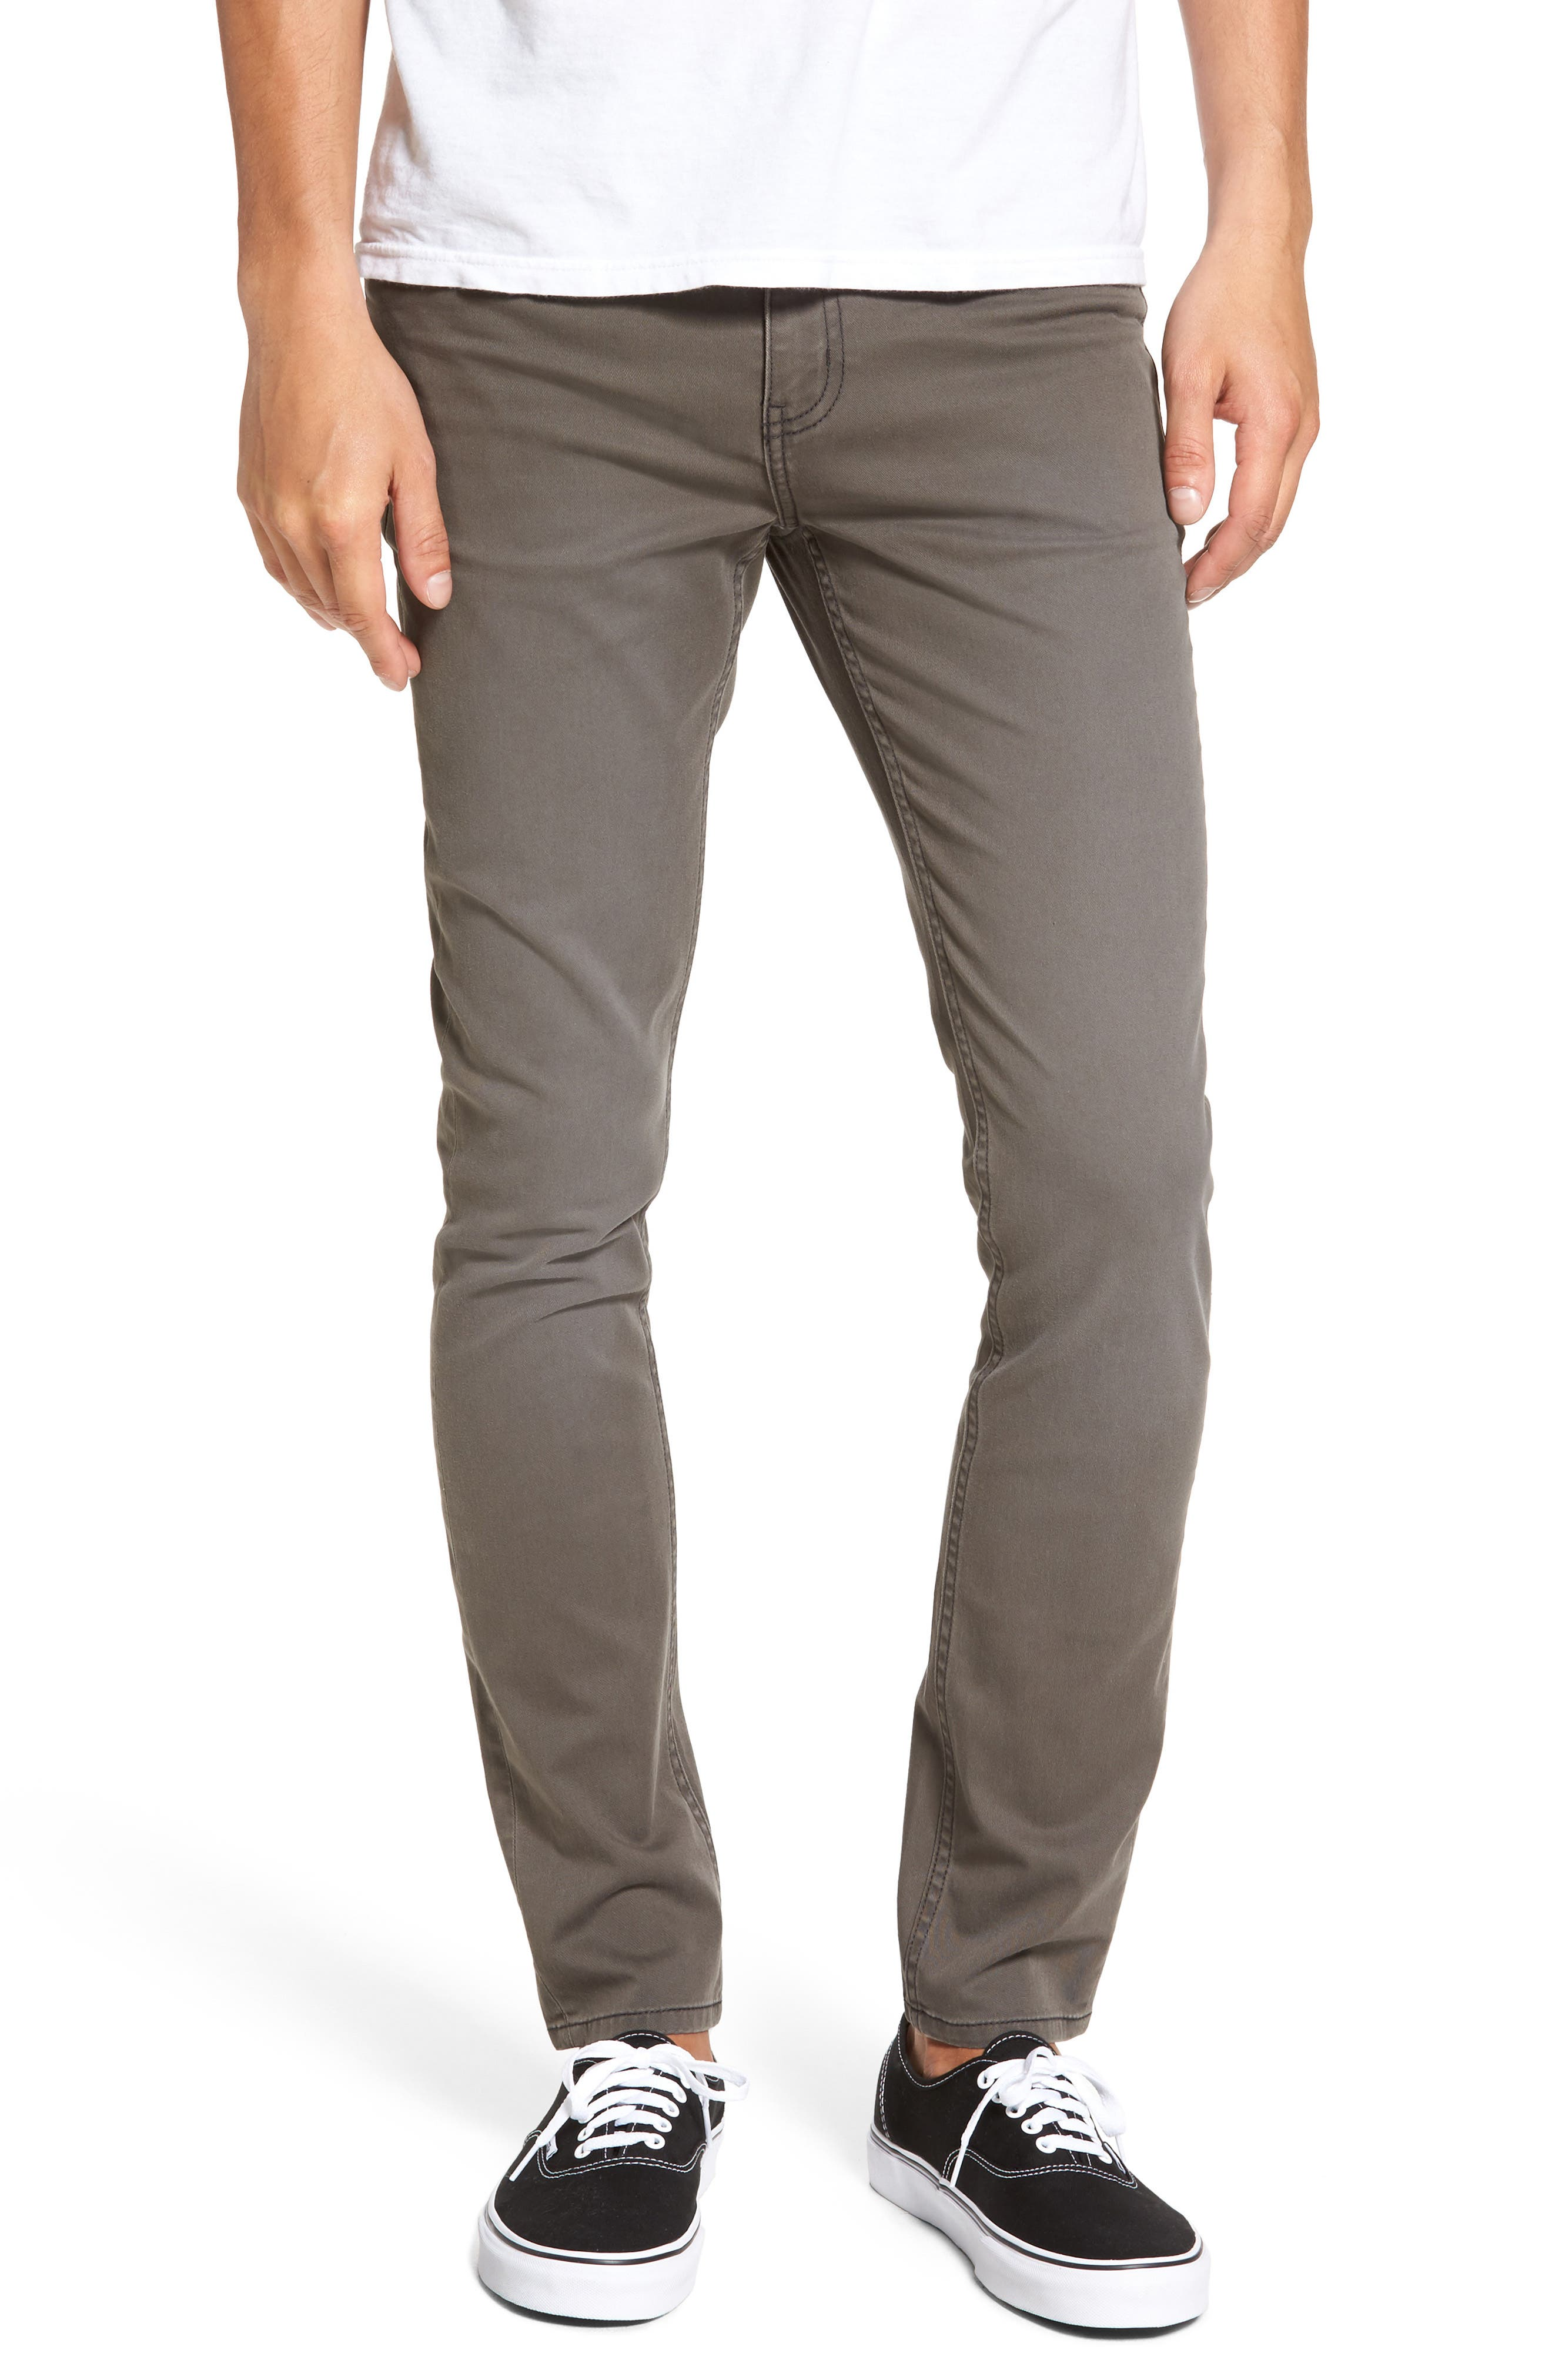 Tight Skinny Fit Jeans,                         Main,                         color, Paper Khaki